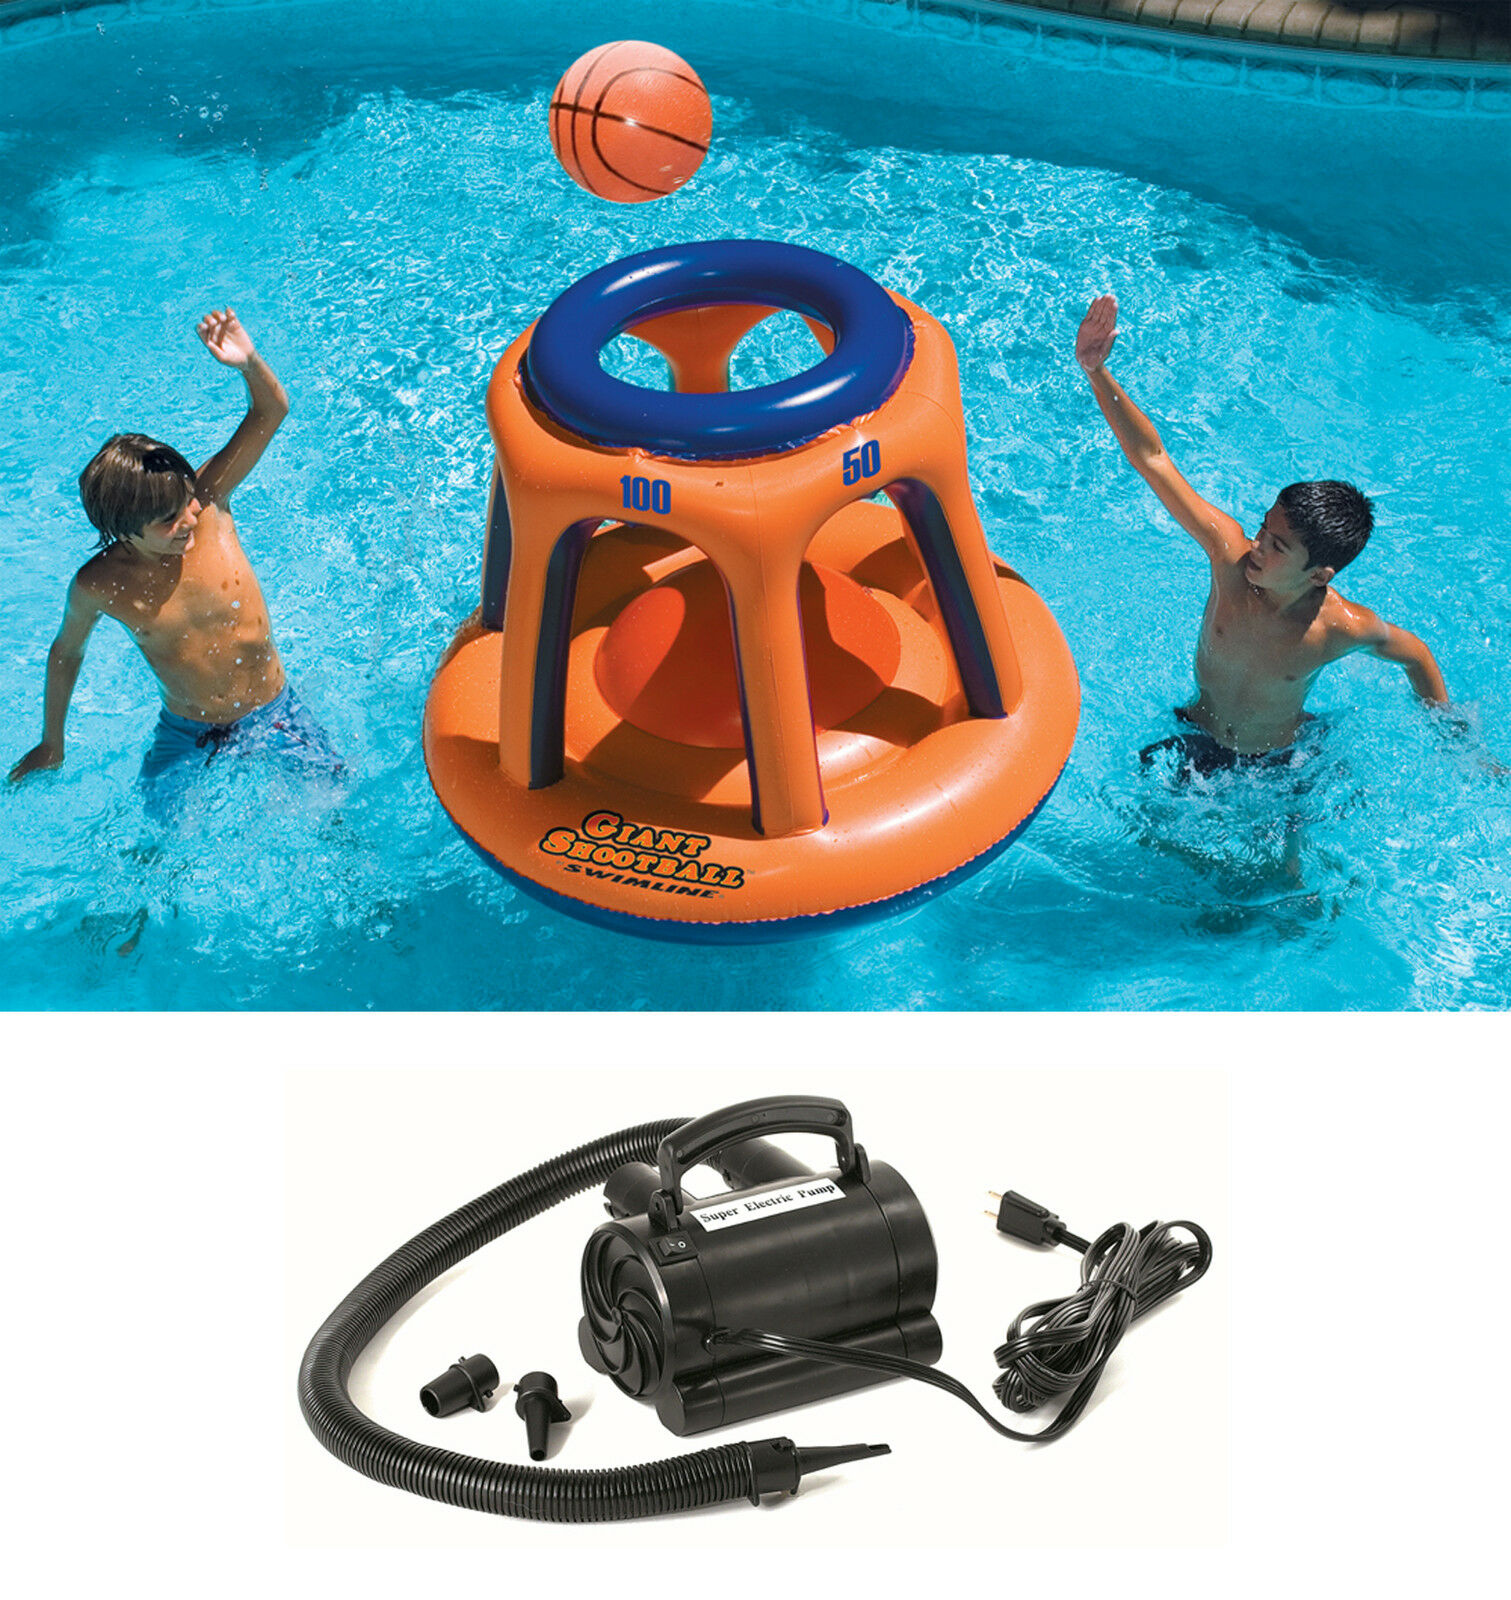 Swimline Basketball Hoop Shootball Inflatable Pool Toy